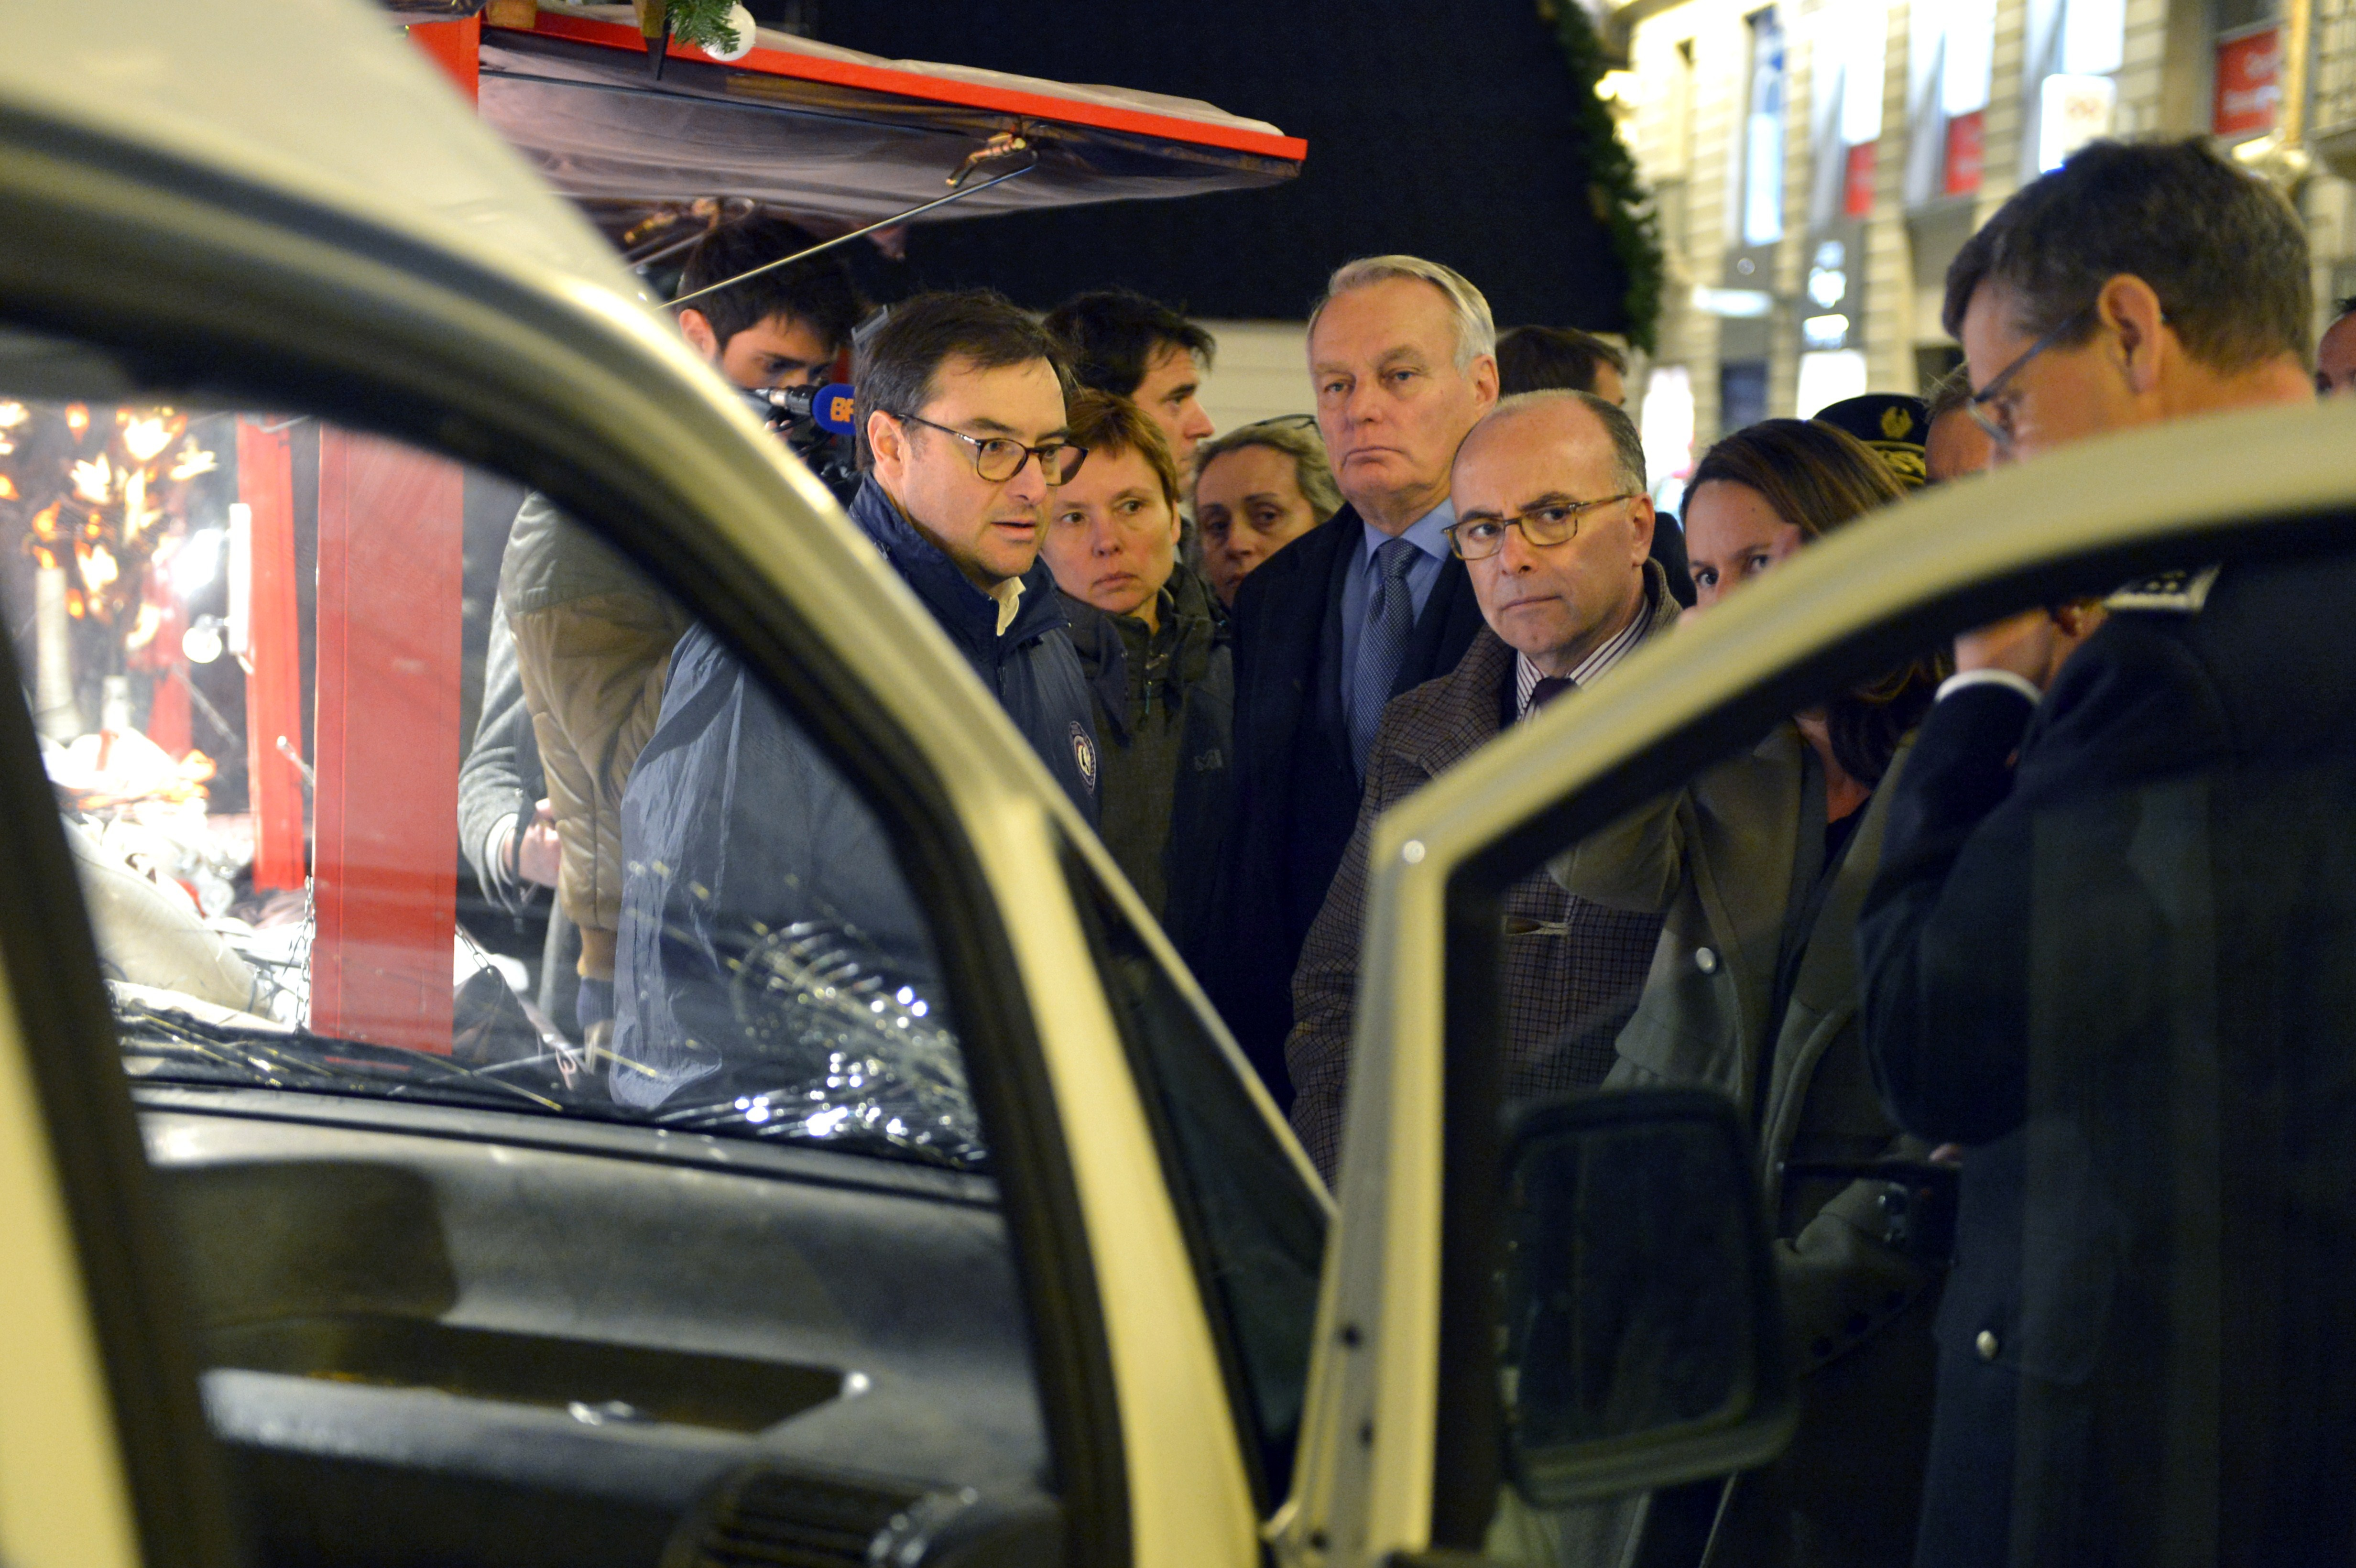 French Interior Minister (C) and French socialist member of Parliament and former Prime Minister Jean-Marc Ayrault (C-R) inspect the van a driver used to plough into a Christmas market in the western French city of Nantes on December 22, 2014.